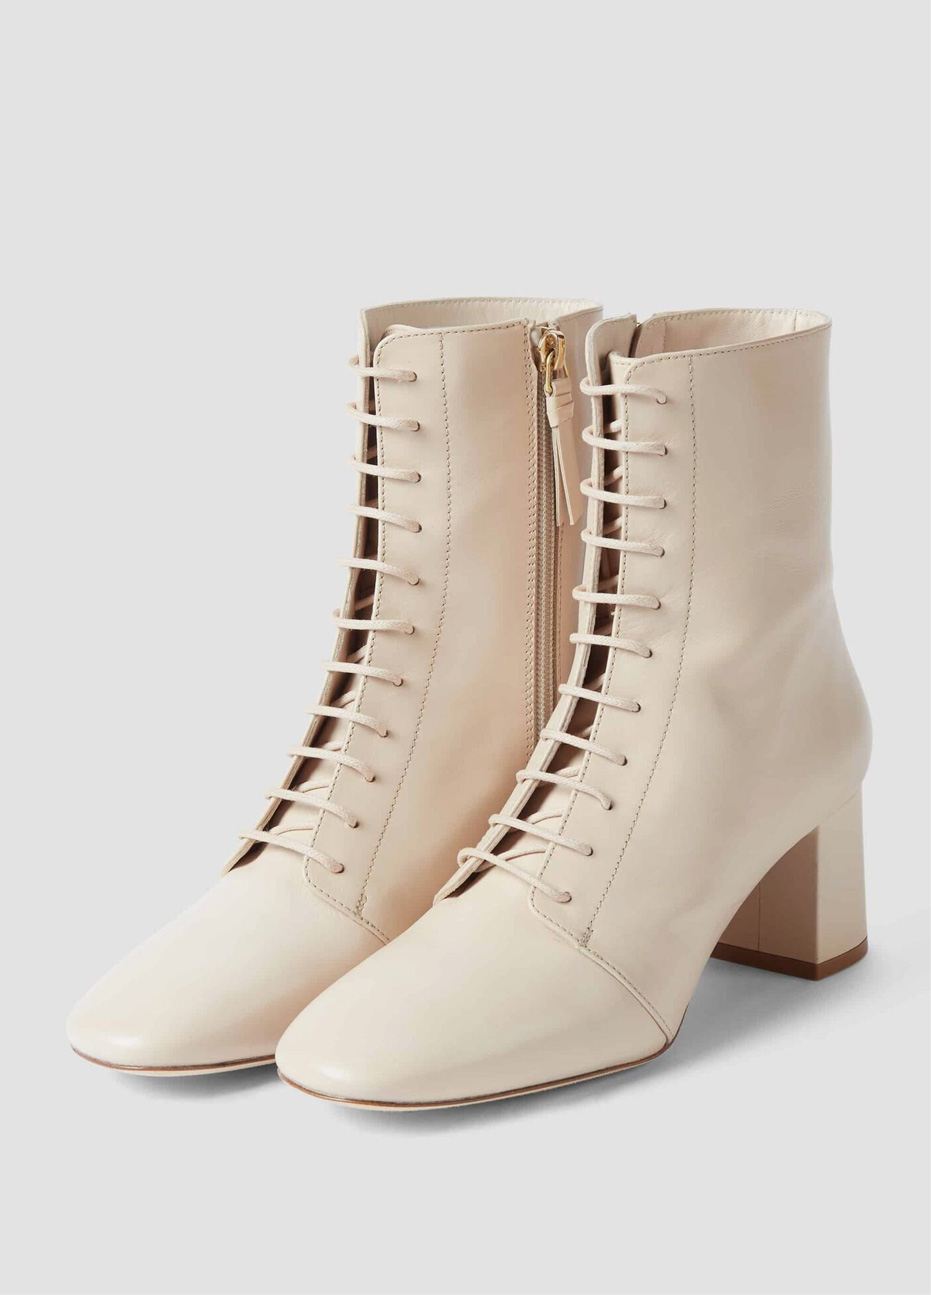 Women's leather lace up boots in off white from Hobbs.